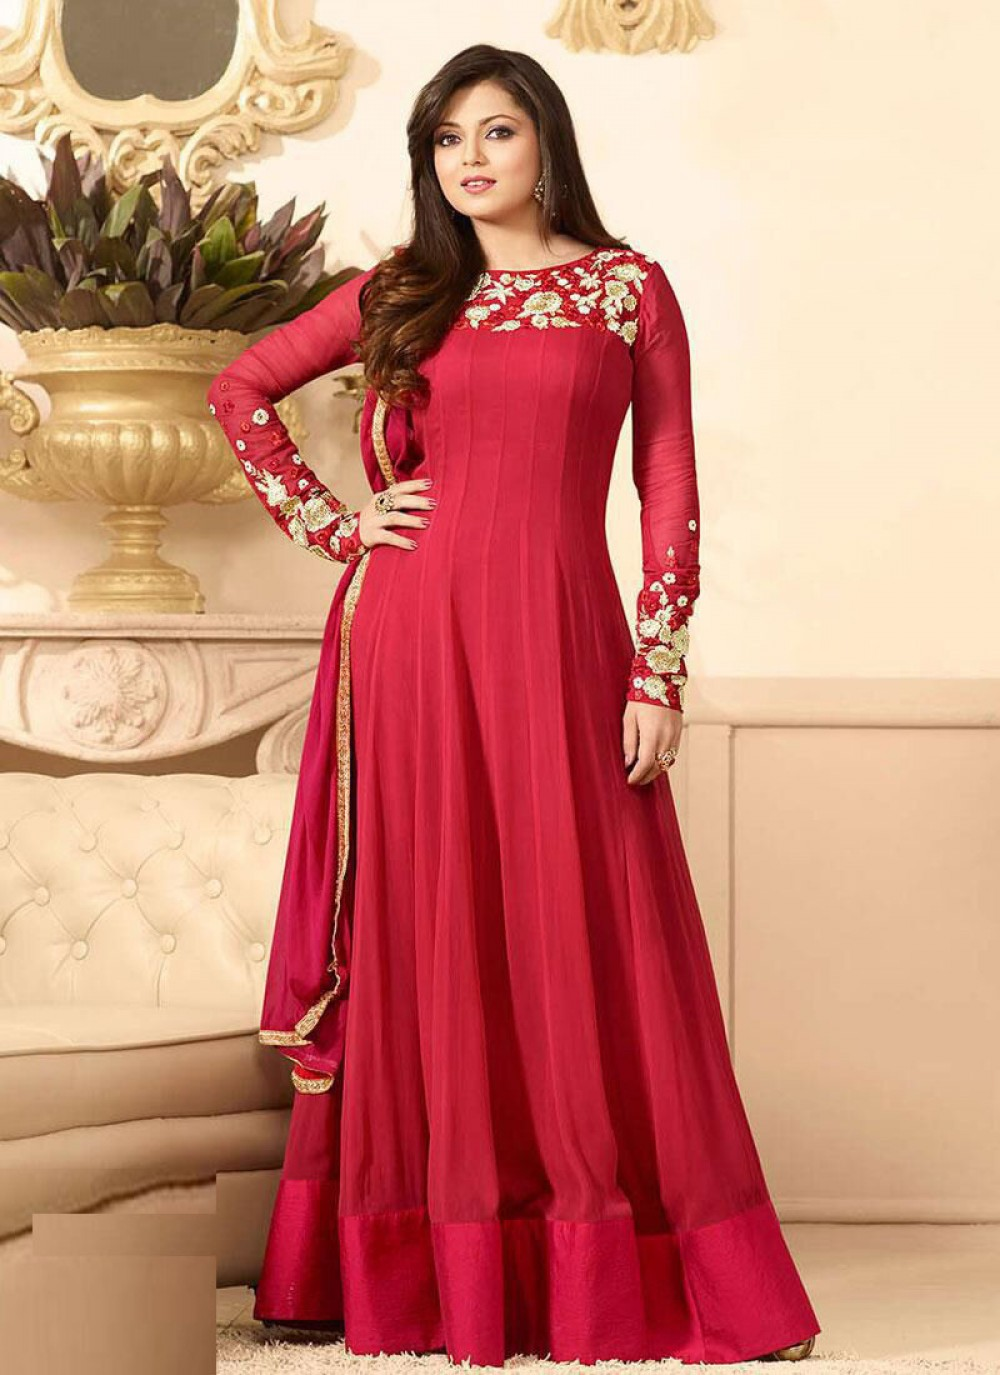 Admiring Red Colour Anarkali Suit With Dupatta